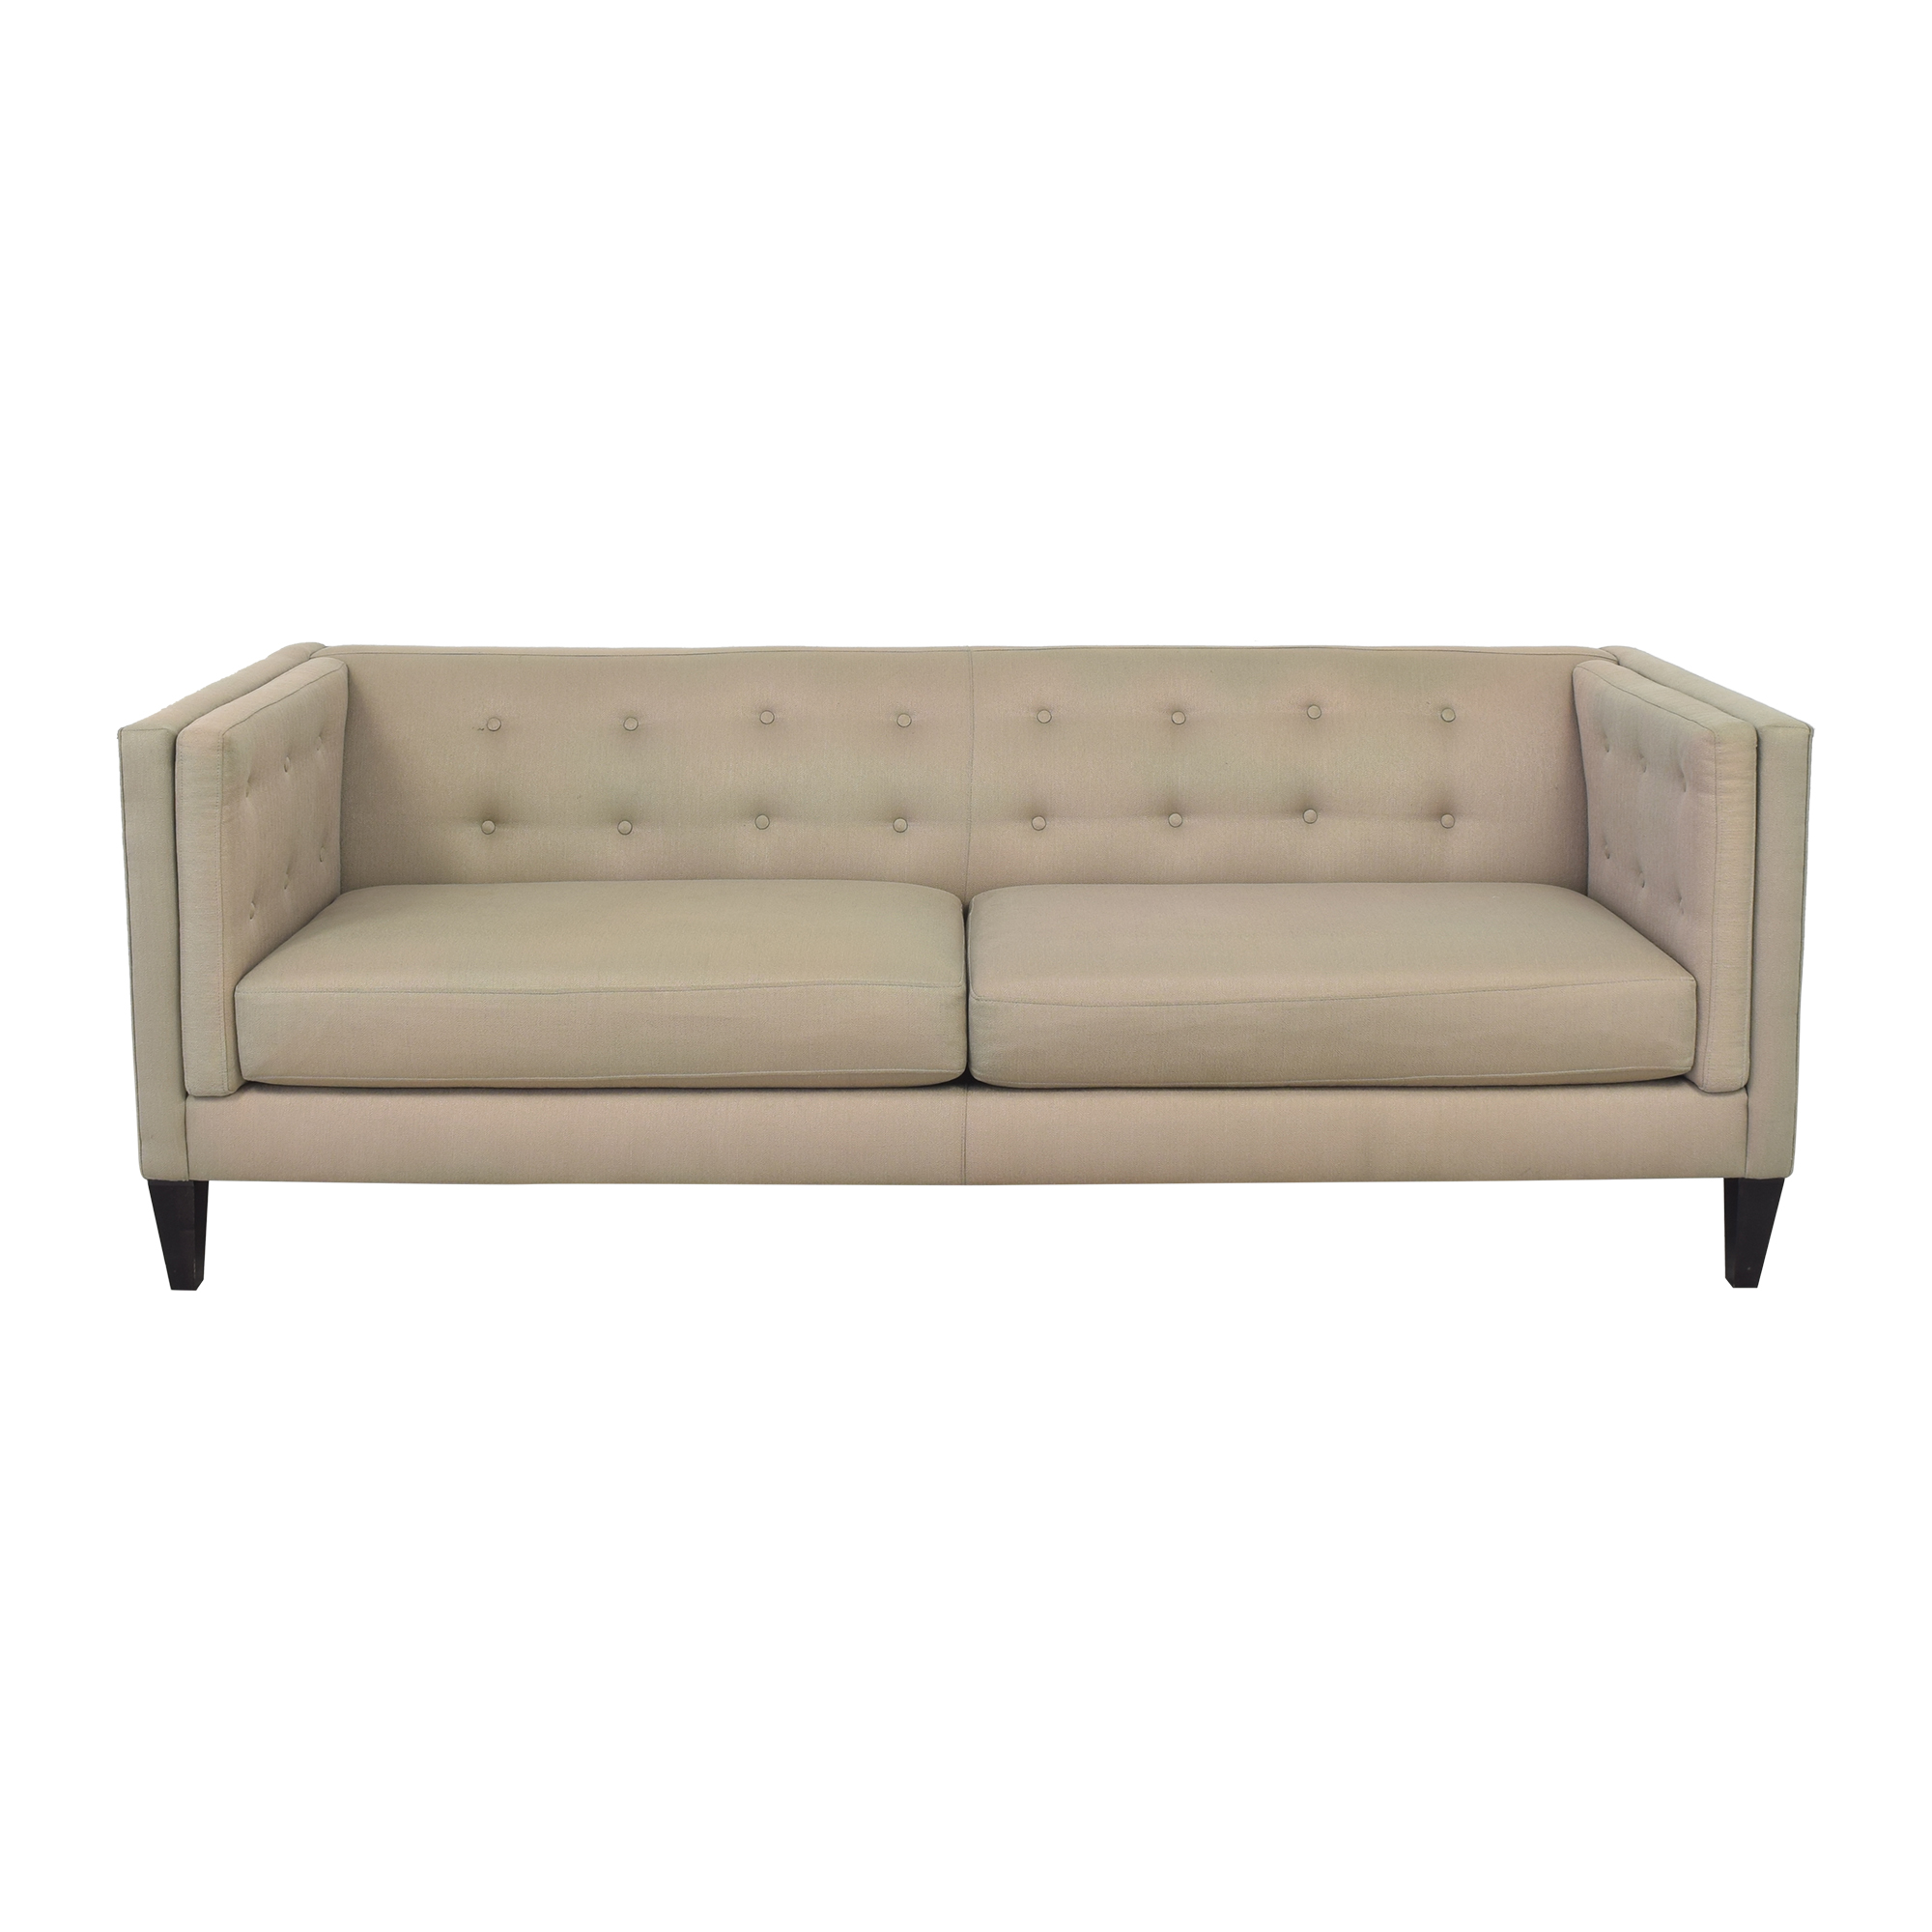 shop Crate & Barrel Crate & Barrel Aidan Tufted Sofa online